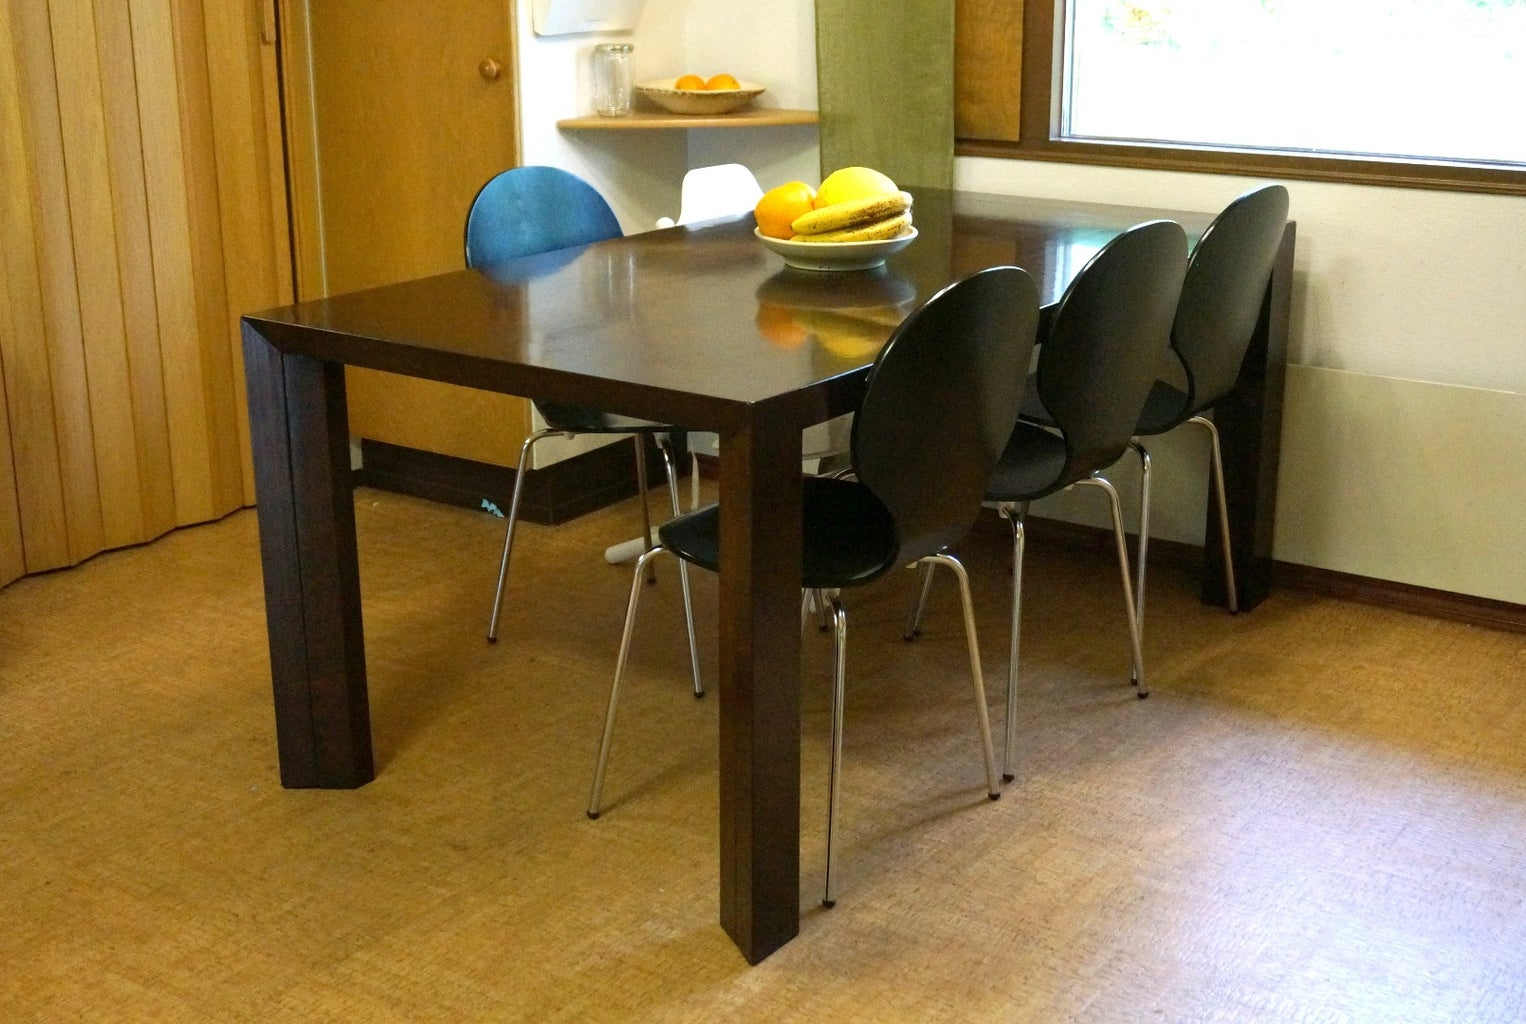 Extendable Dining Table With Extra Leg Room